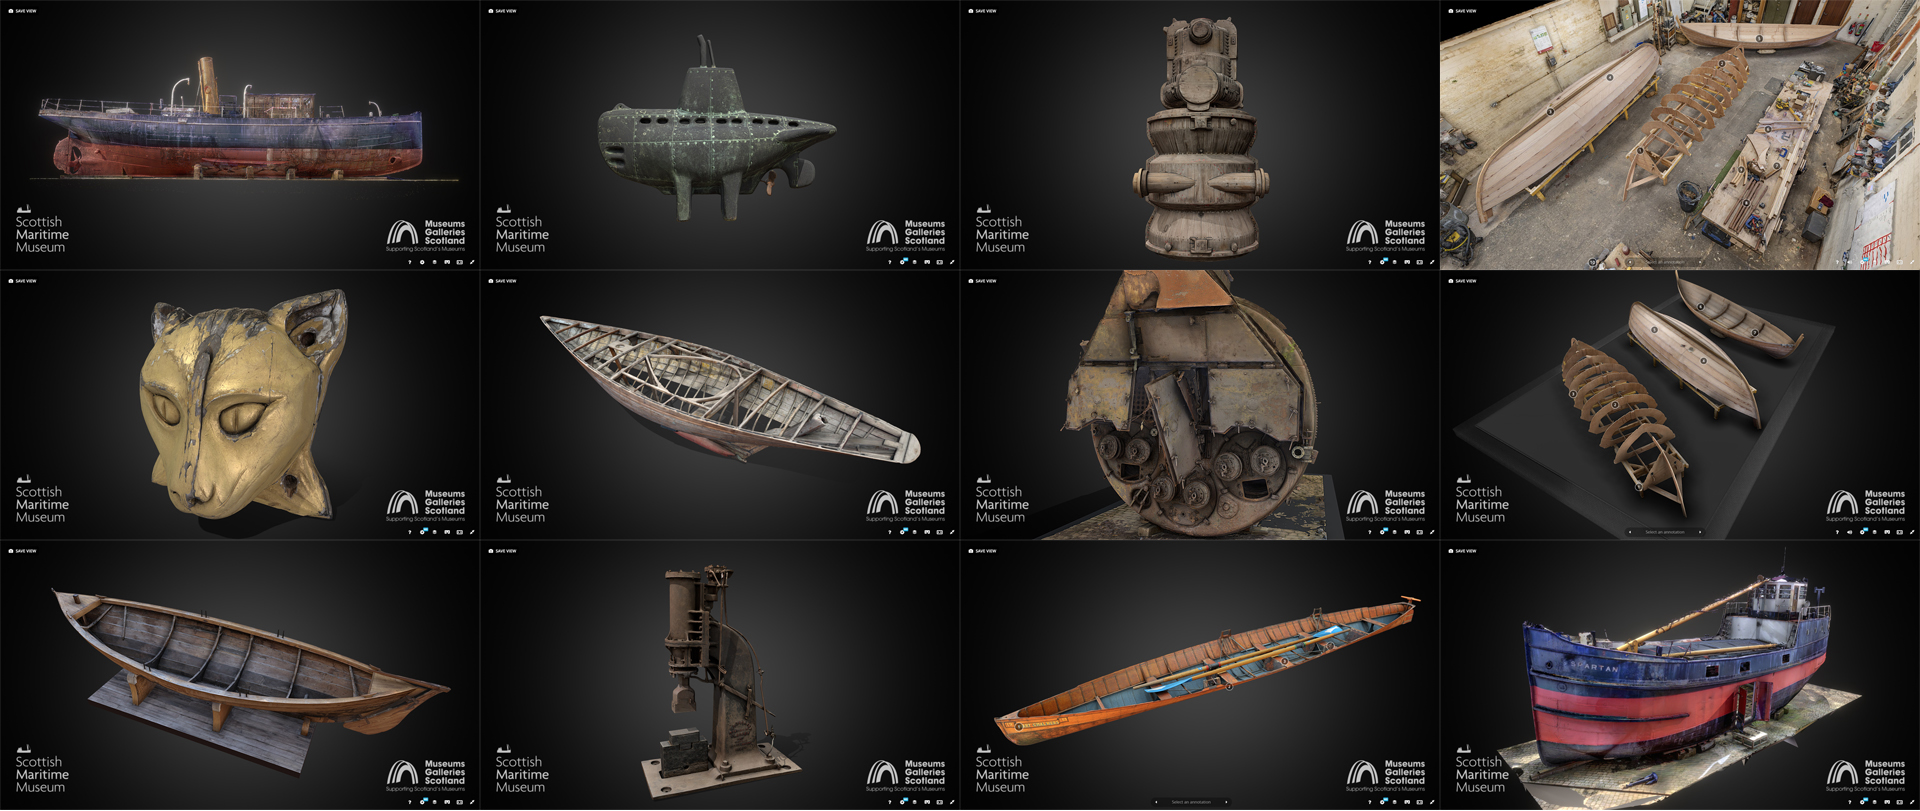 scottish maritime museum sketchfab models